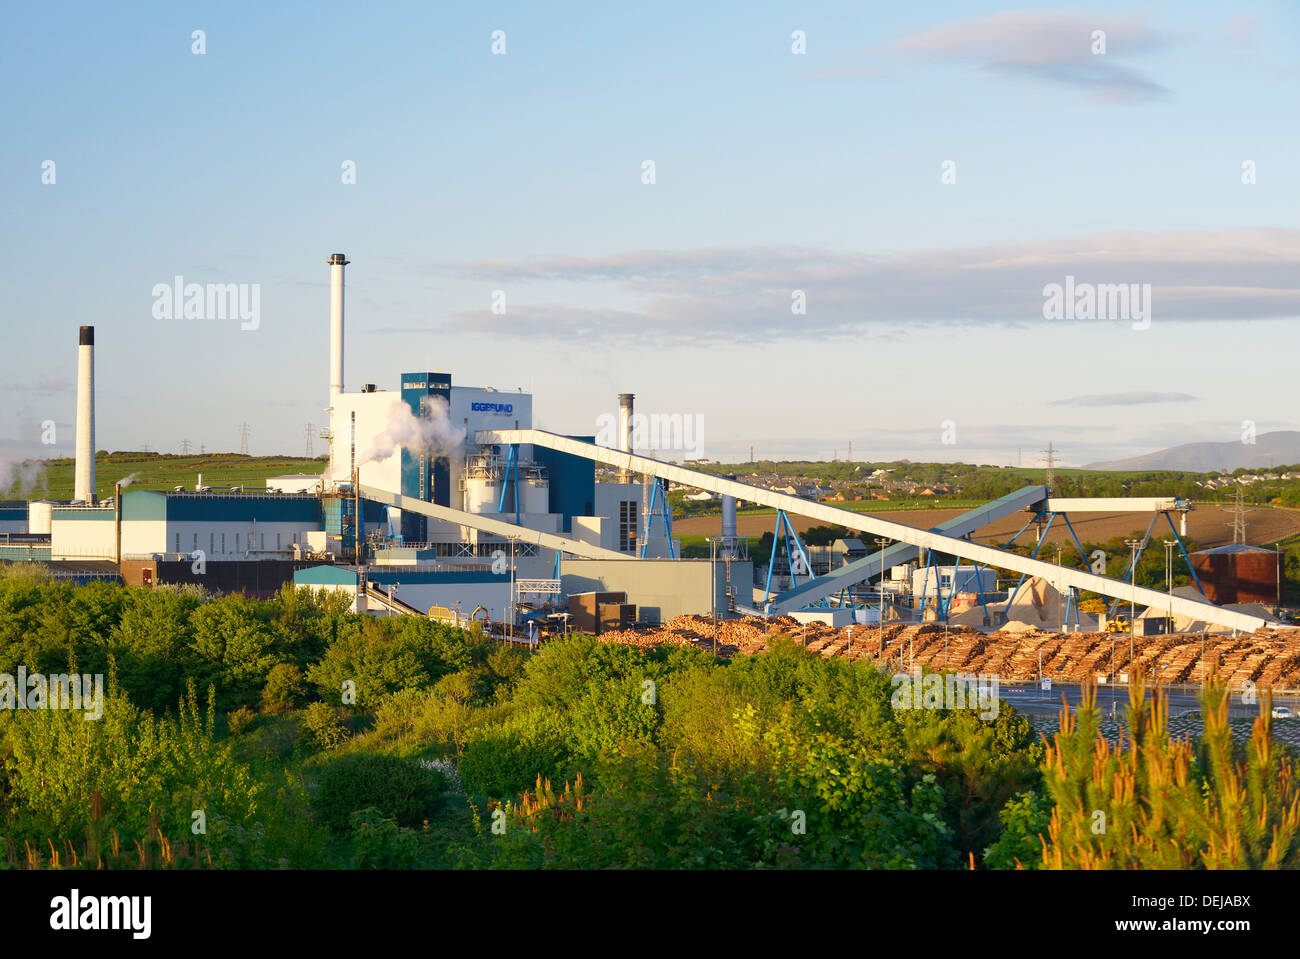 The Workington Mill, Cumbria, England. Timber pulpboard processing manufacturing factory owned by Iggesund - Stock Image